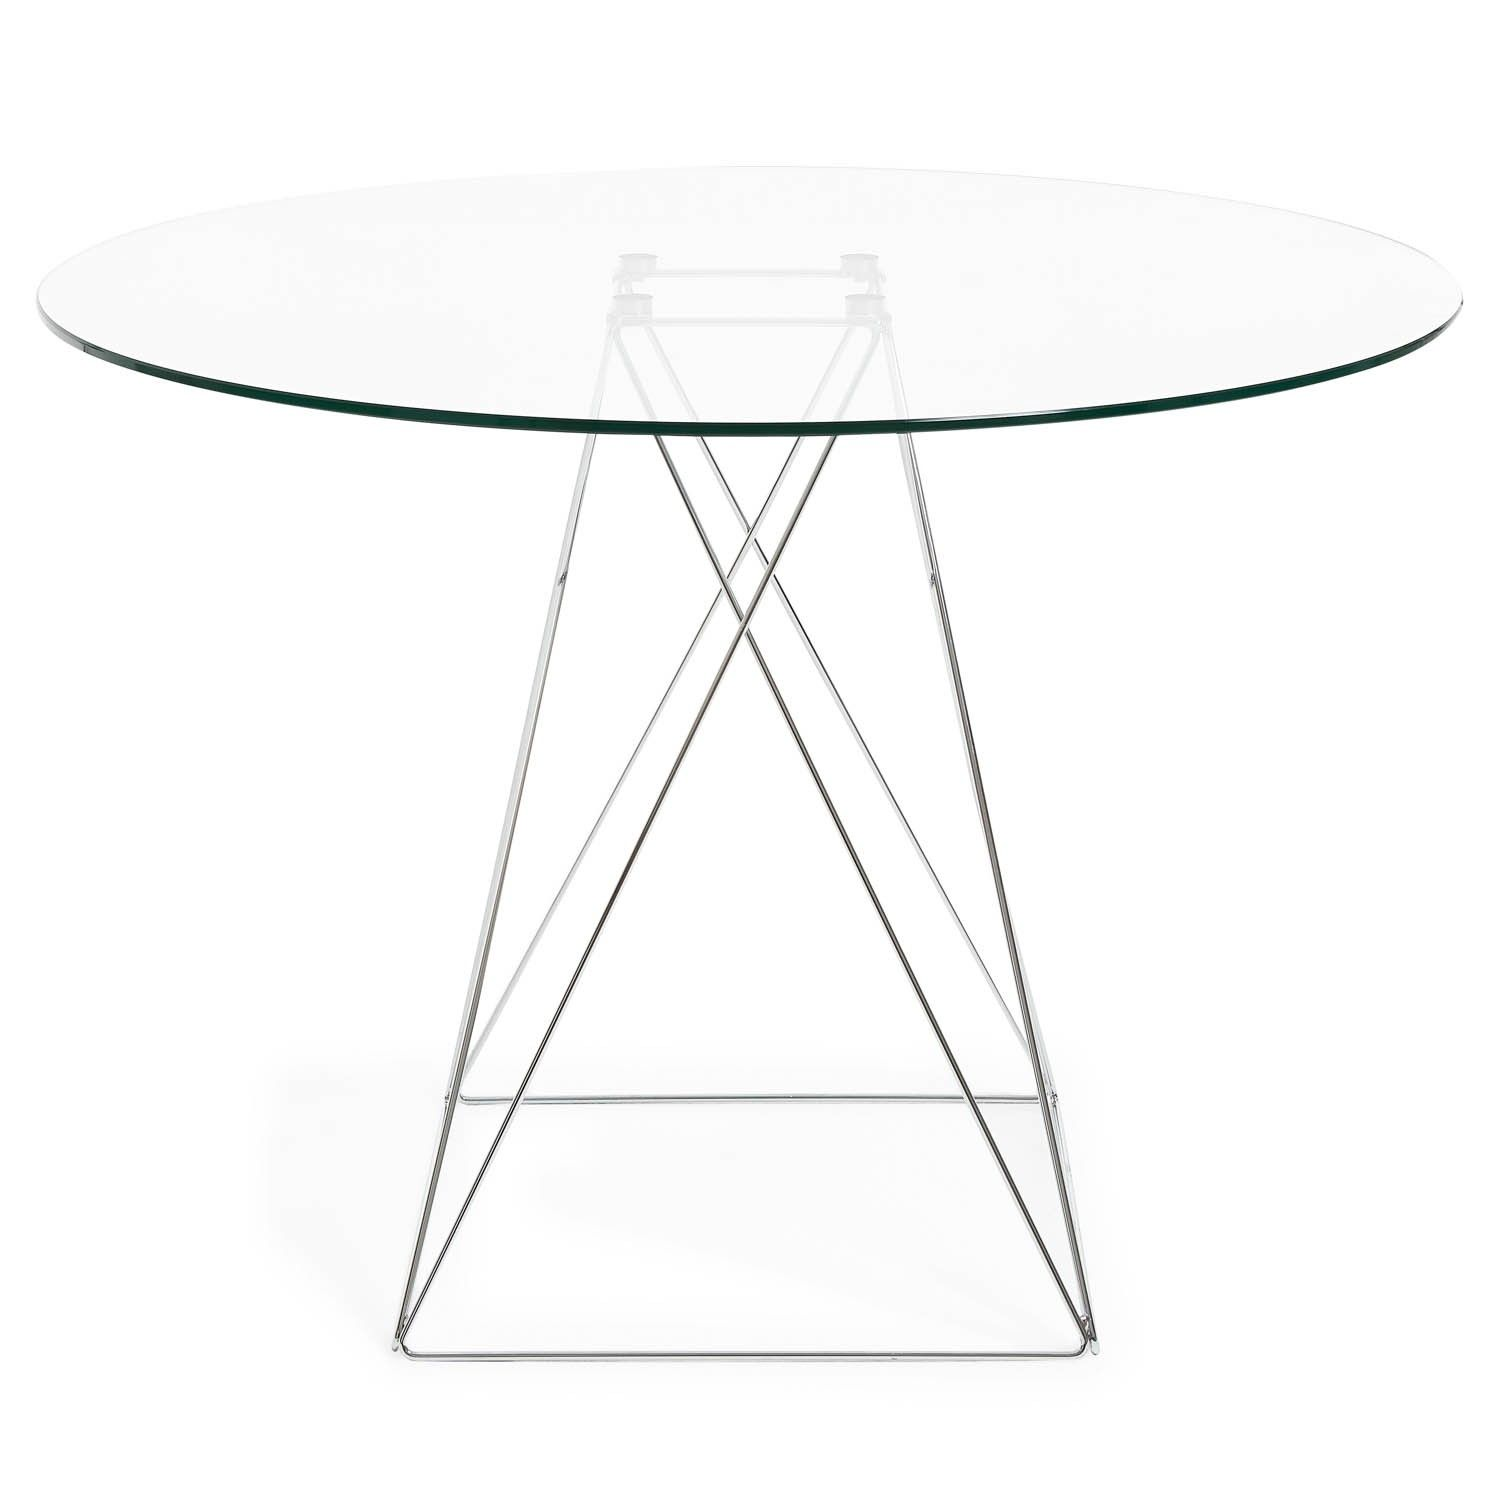 Crafted In Italy A Modern Vision Is Rendered In Tempered Glass And A Chromed Glass Round Dining Table Round Dining Table Table [ 1500 x 1500 Pixel ]